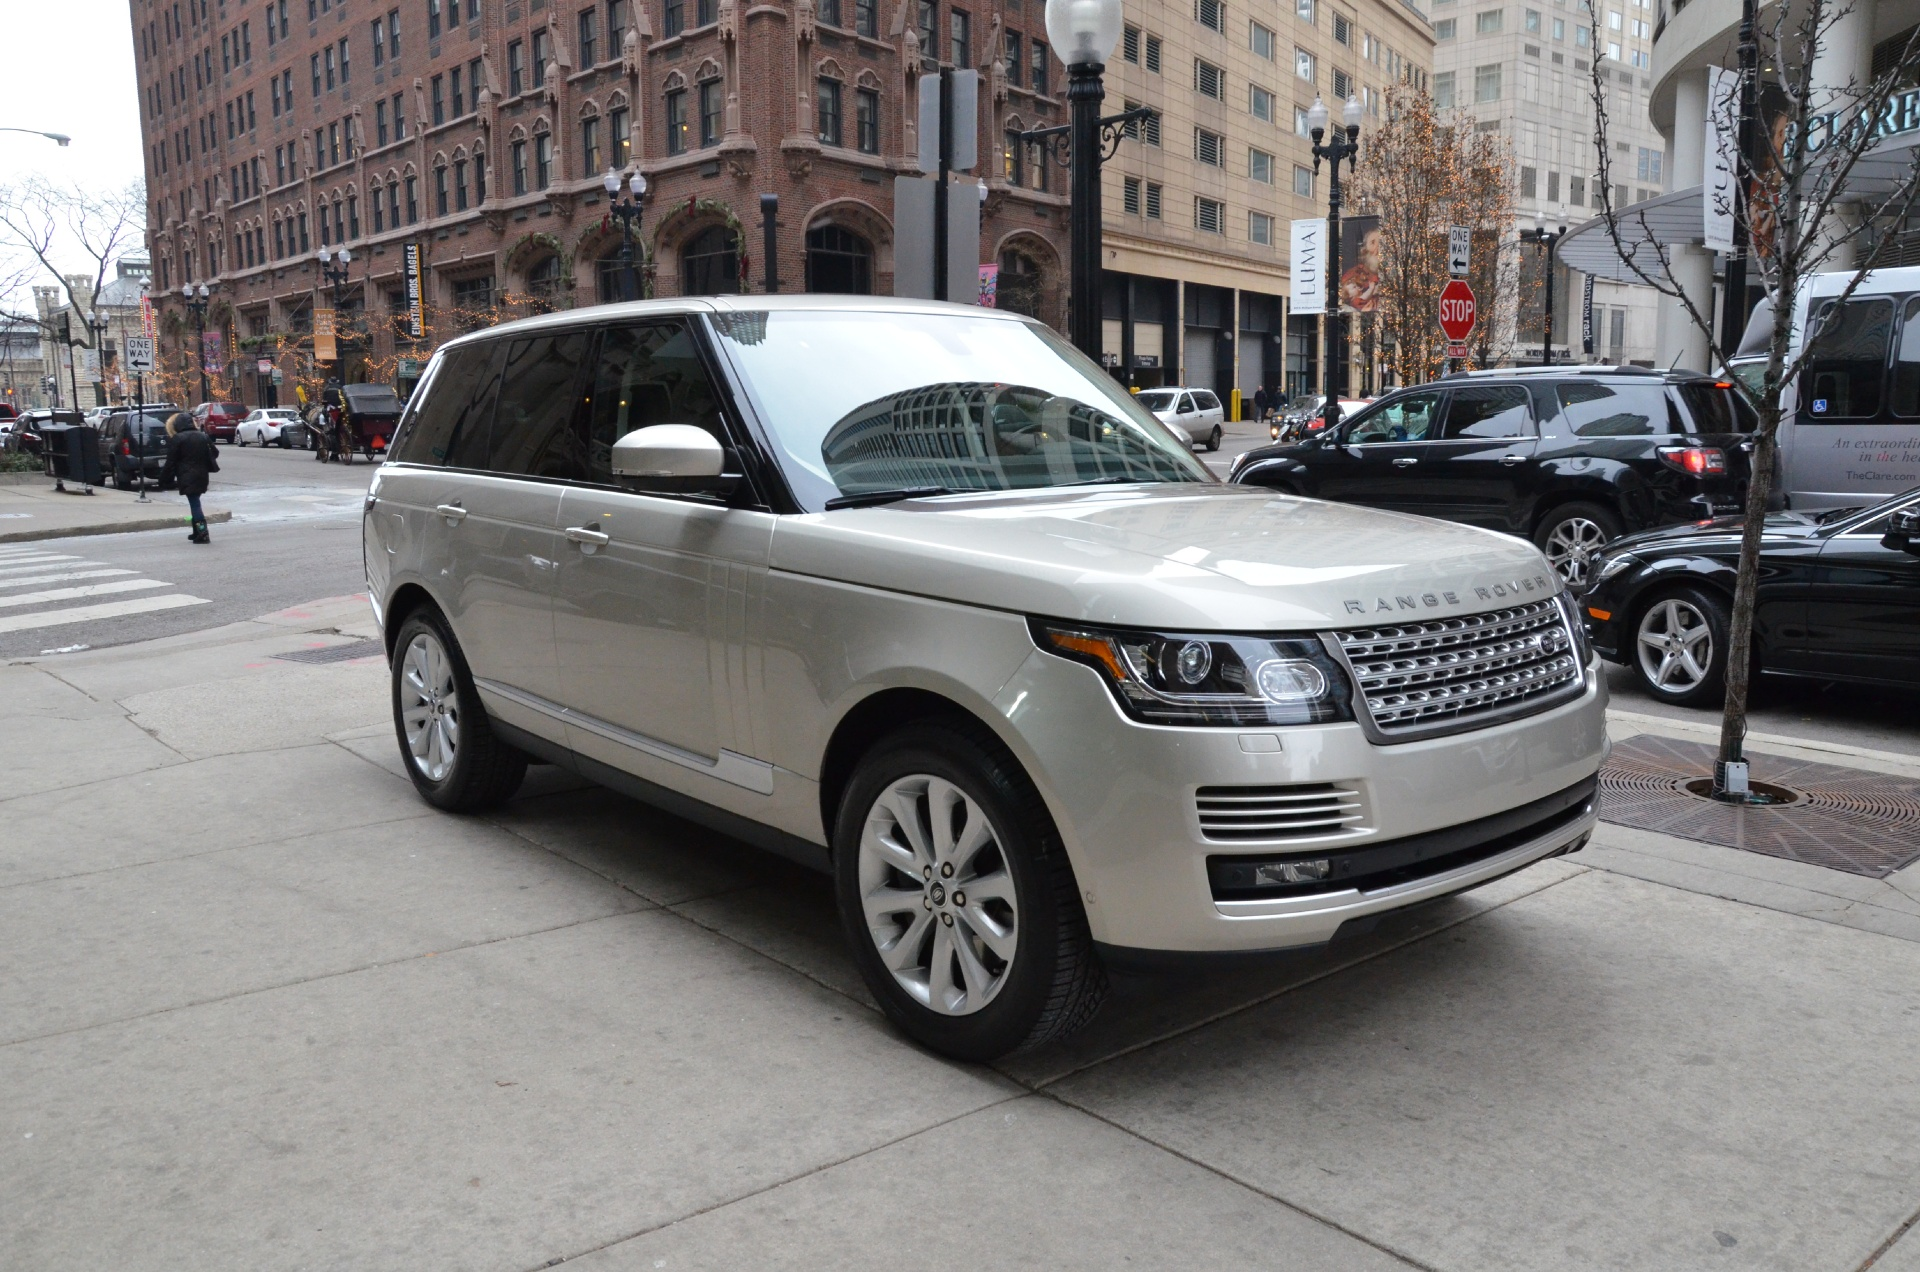 2013 Land Rover Range Rover Hse Stock 07704 For Sale